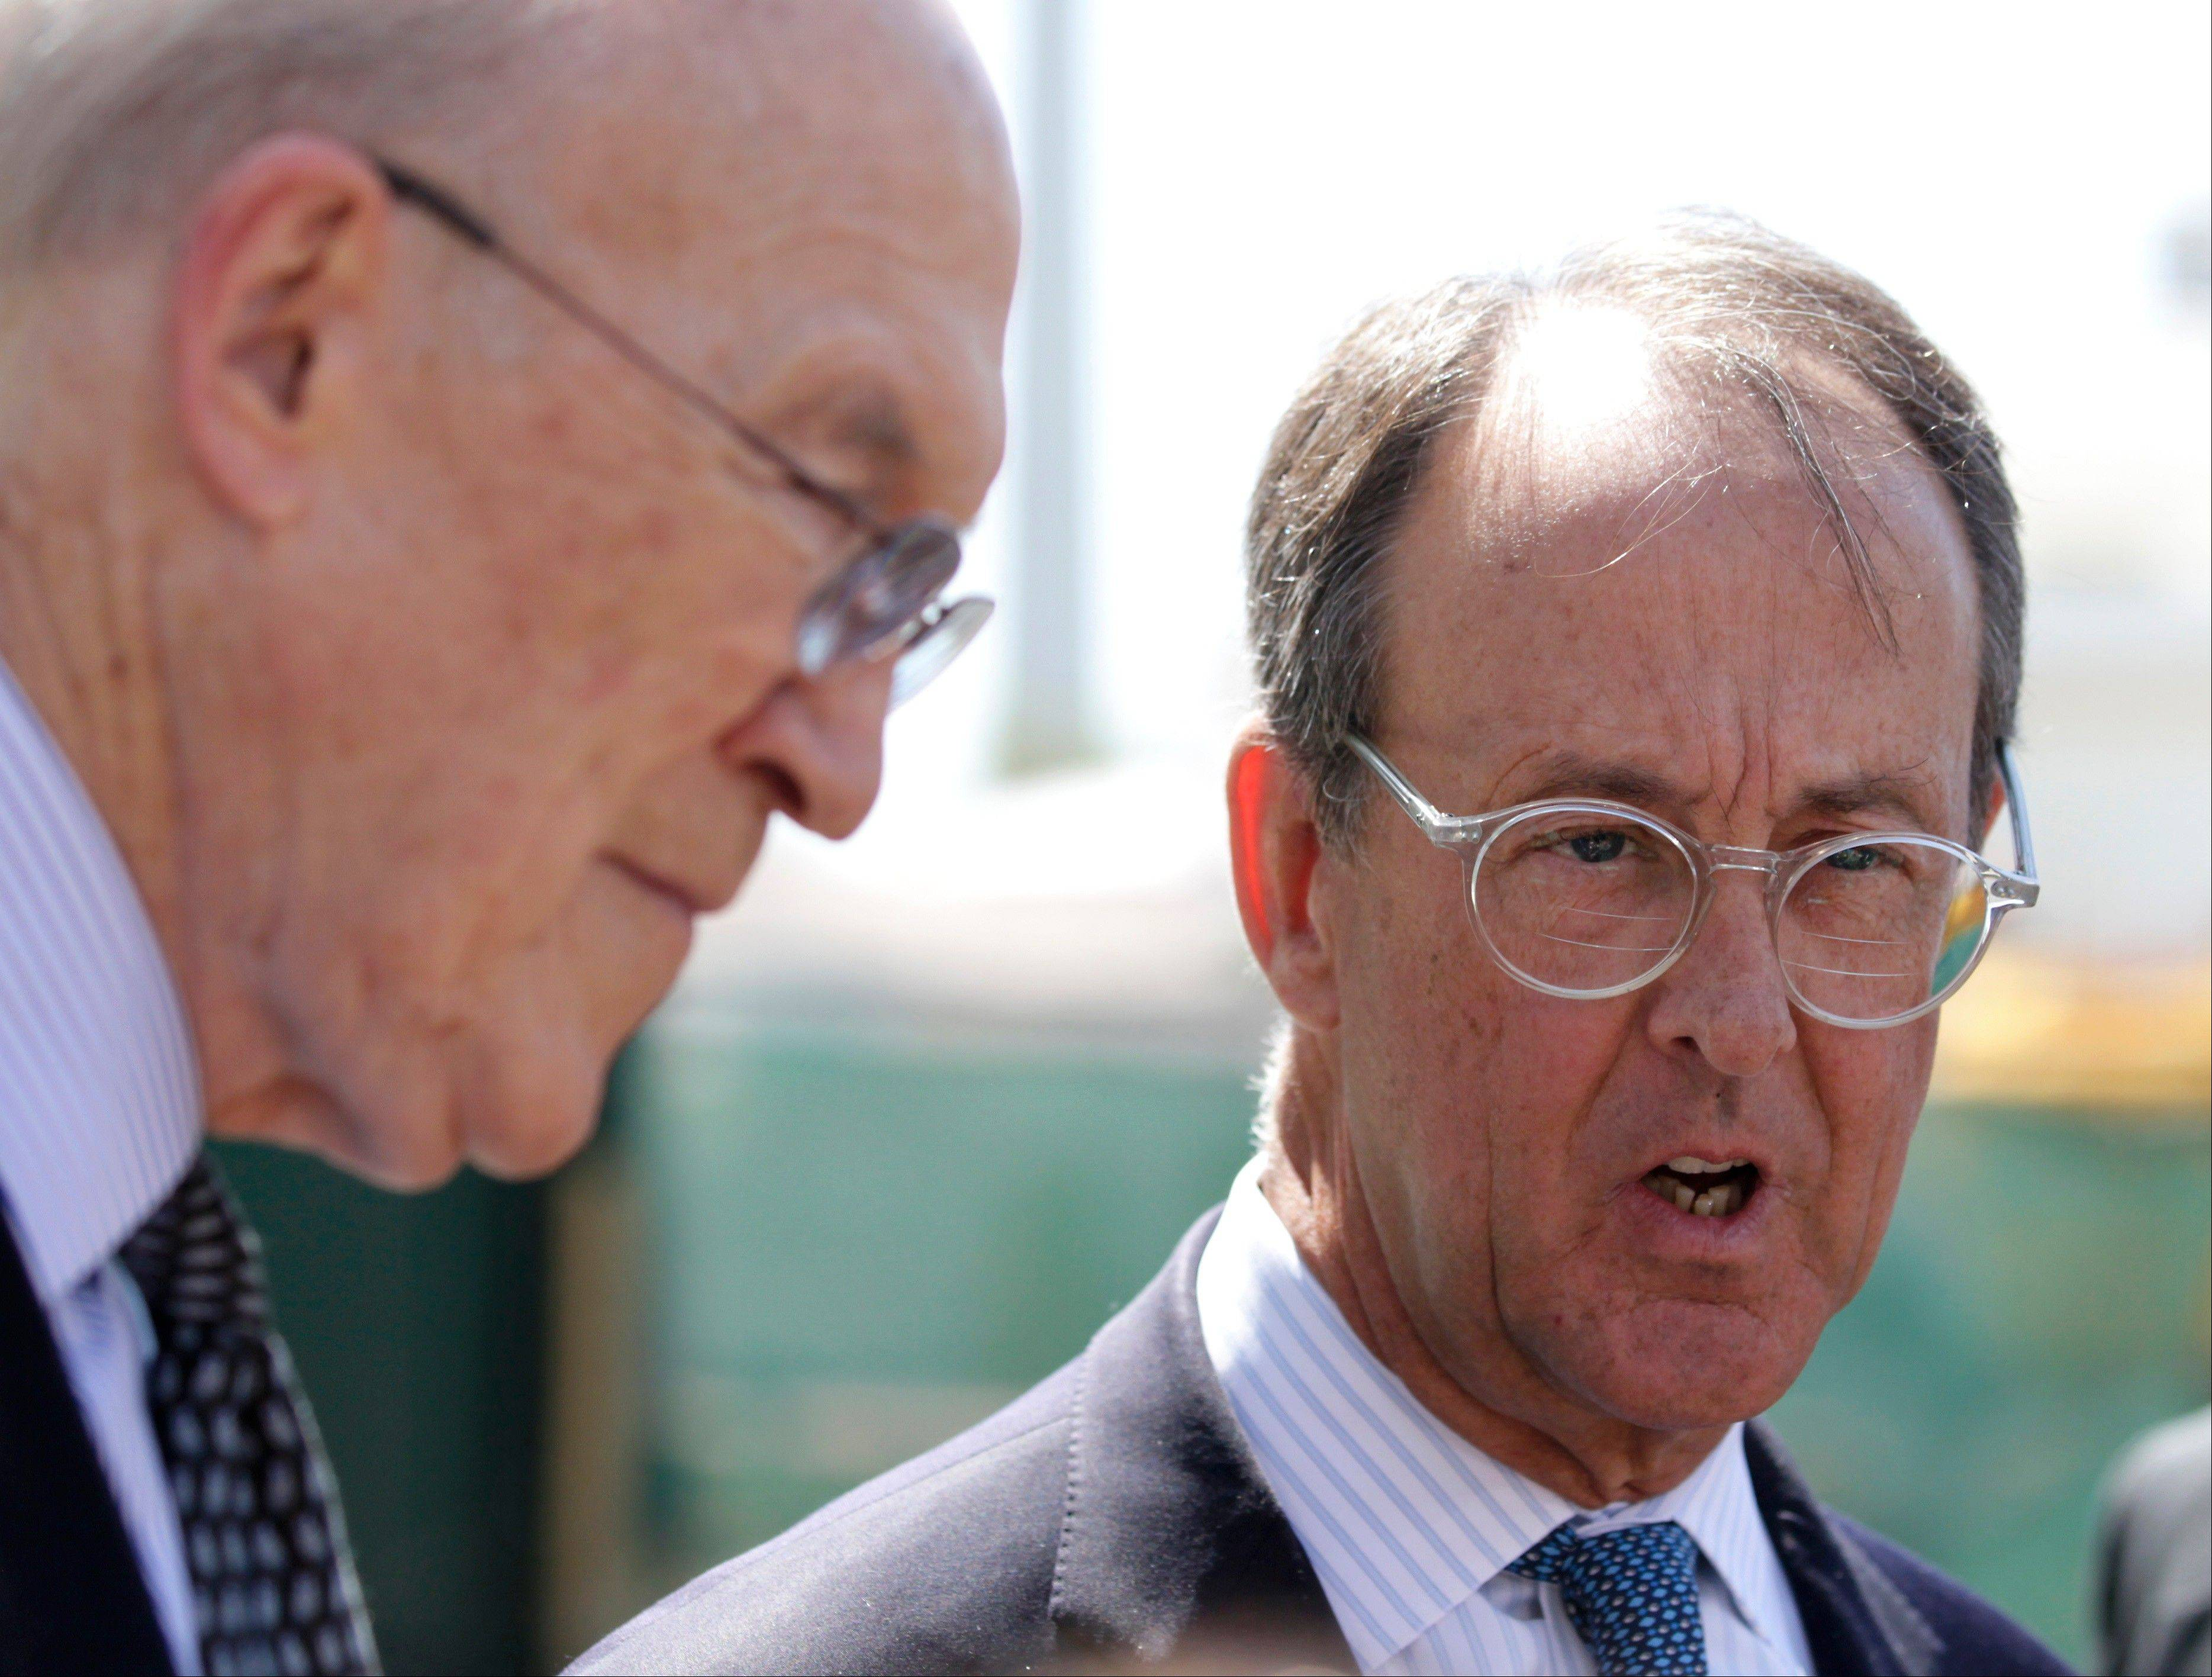 The co-chairmen of the president's deficit reduction commission, Erskine Bowles, right, and Alan Simpson talk to reporters outside the White House in Washington after an April meeting with President Barack Obama in the Oval Office.